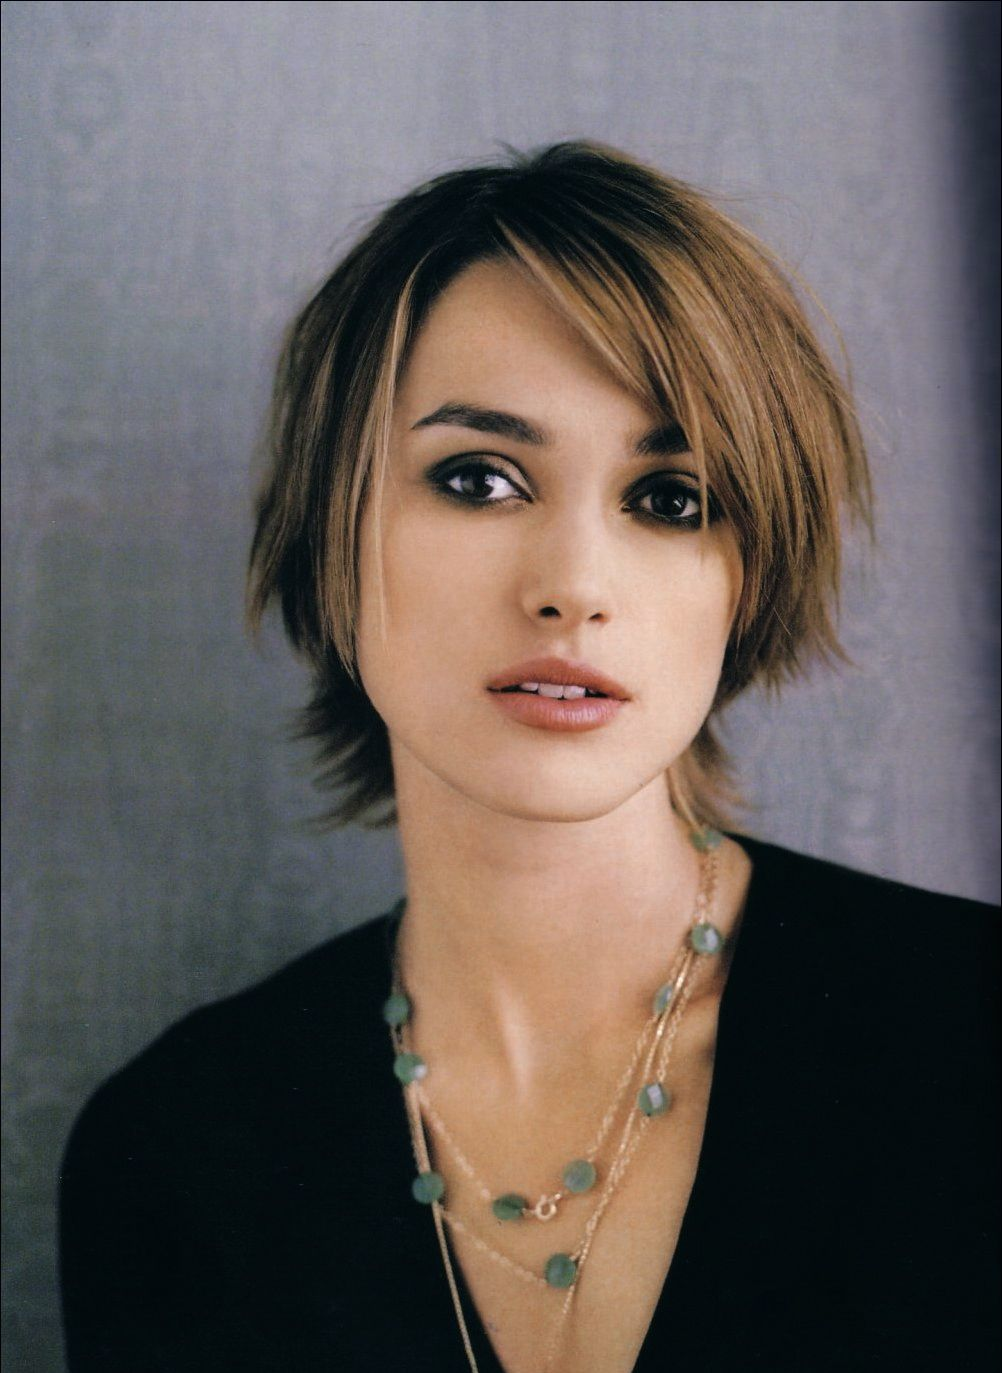 Keira knightley ohhh i like this cut アメリカン pinterest